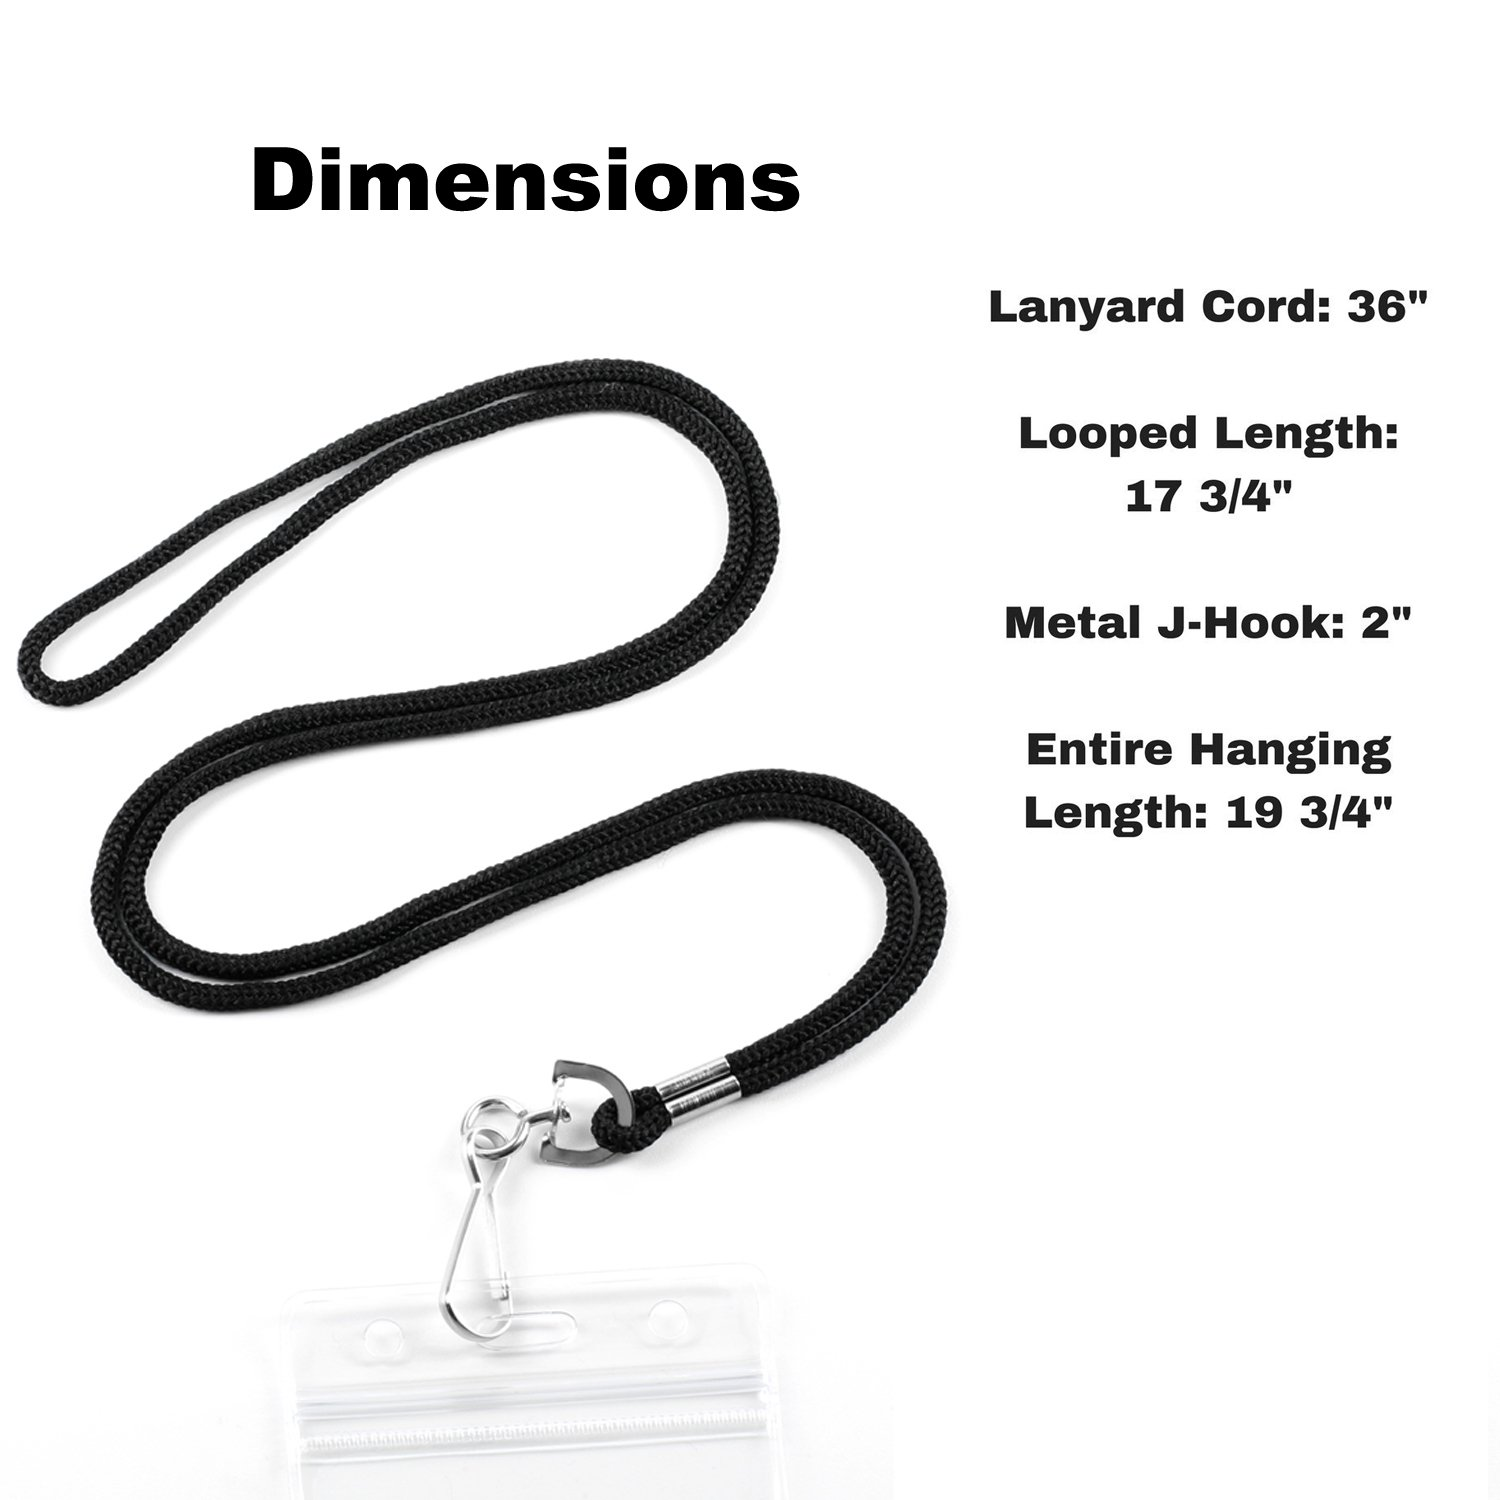 Premium Bulk Lanyard for ID Nametag Badge Holder (Satin Black, 100 Pack) – Nylon Woven Round lanyards 36-inch Braided Cord, Metal Swivel J-Hook - Business, School, Events Favors – by IRISING by LION KNIGHT (Image #3)